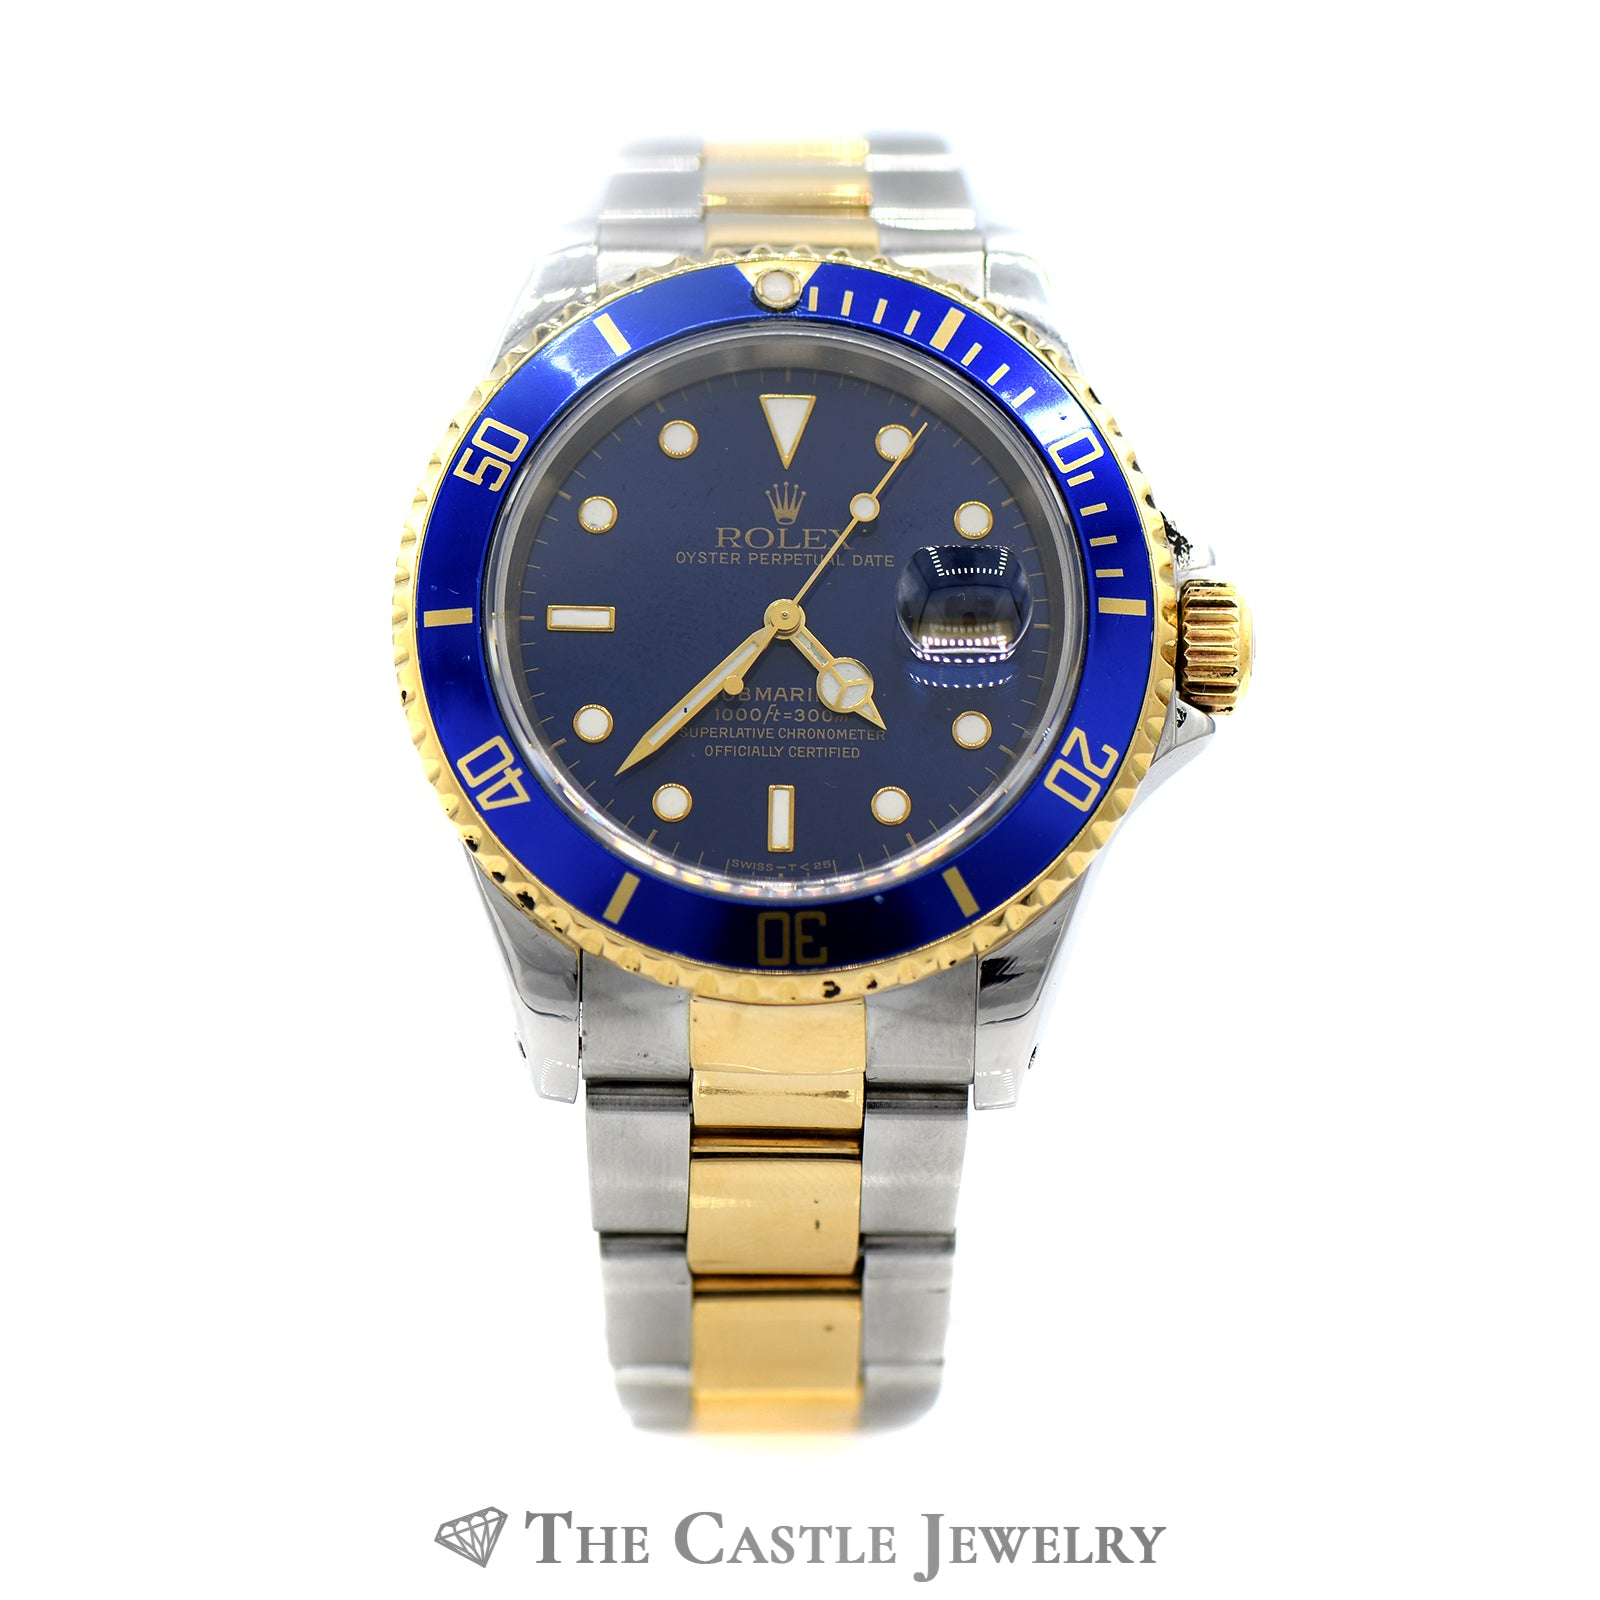 Rolex Submariner Blue on Blue with Two-toned Oyster Bracelet